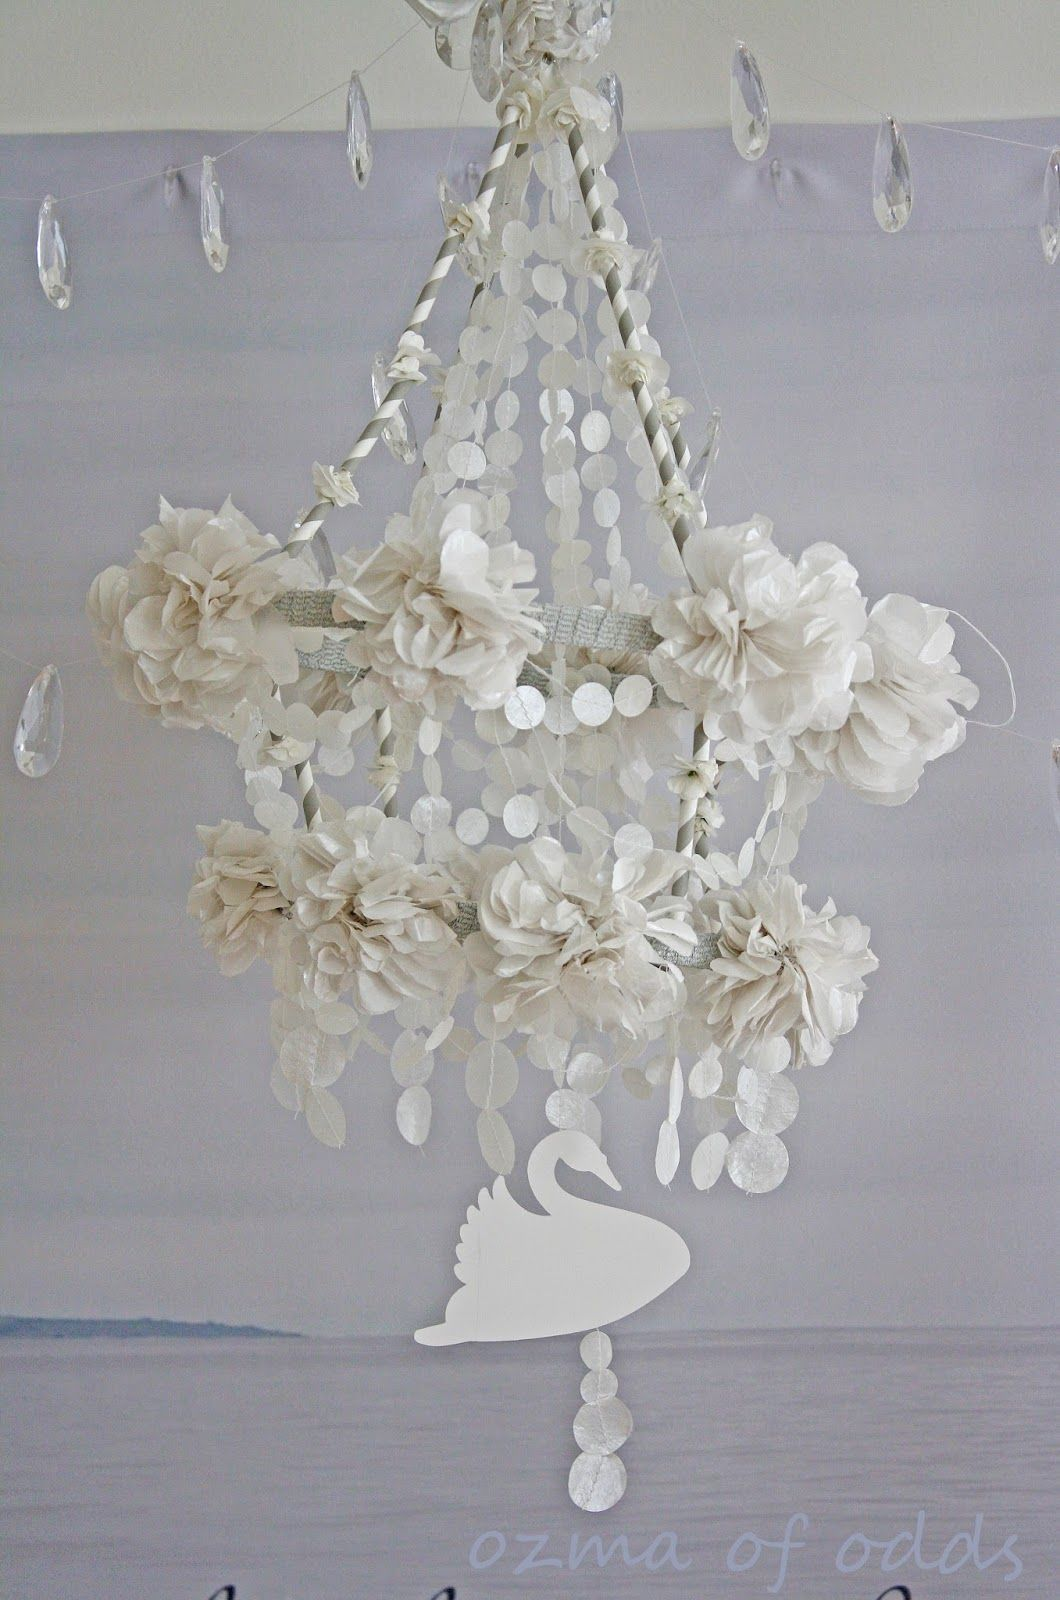 Decorative chandeliers for every wedding theme paper chandelier ozma of odds a pretty pearl paper pajaki arubaitofo Gallery